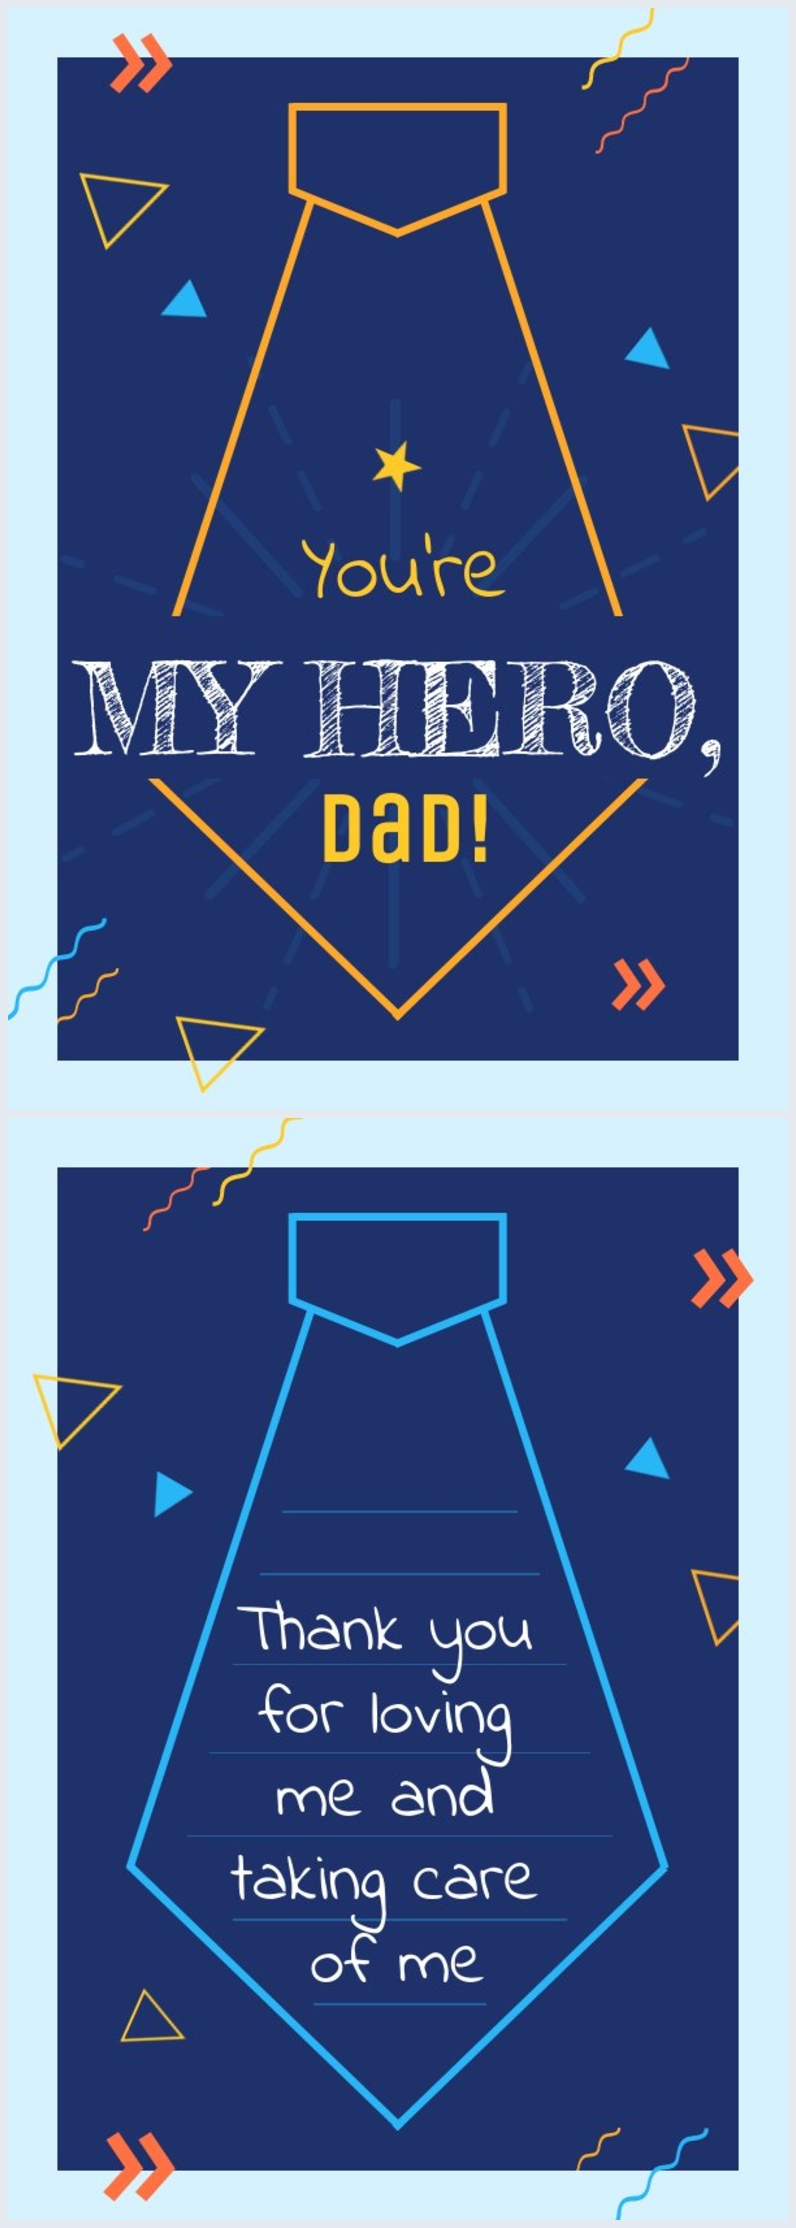 Father's day tie card example